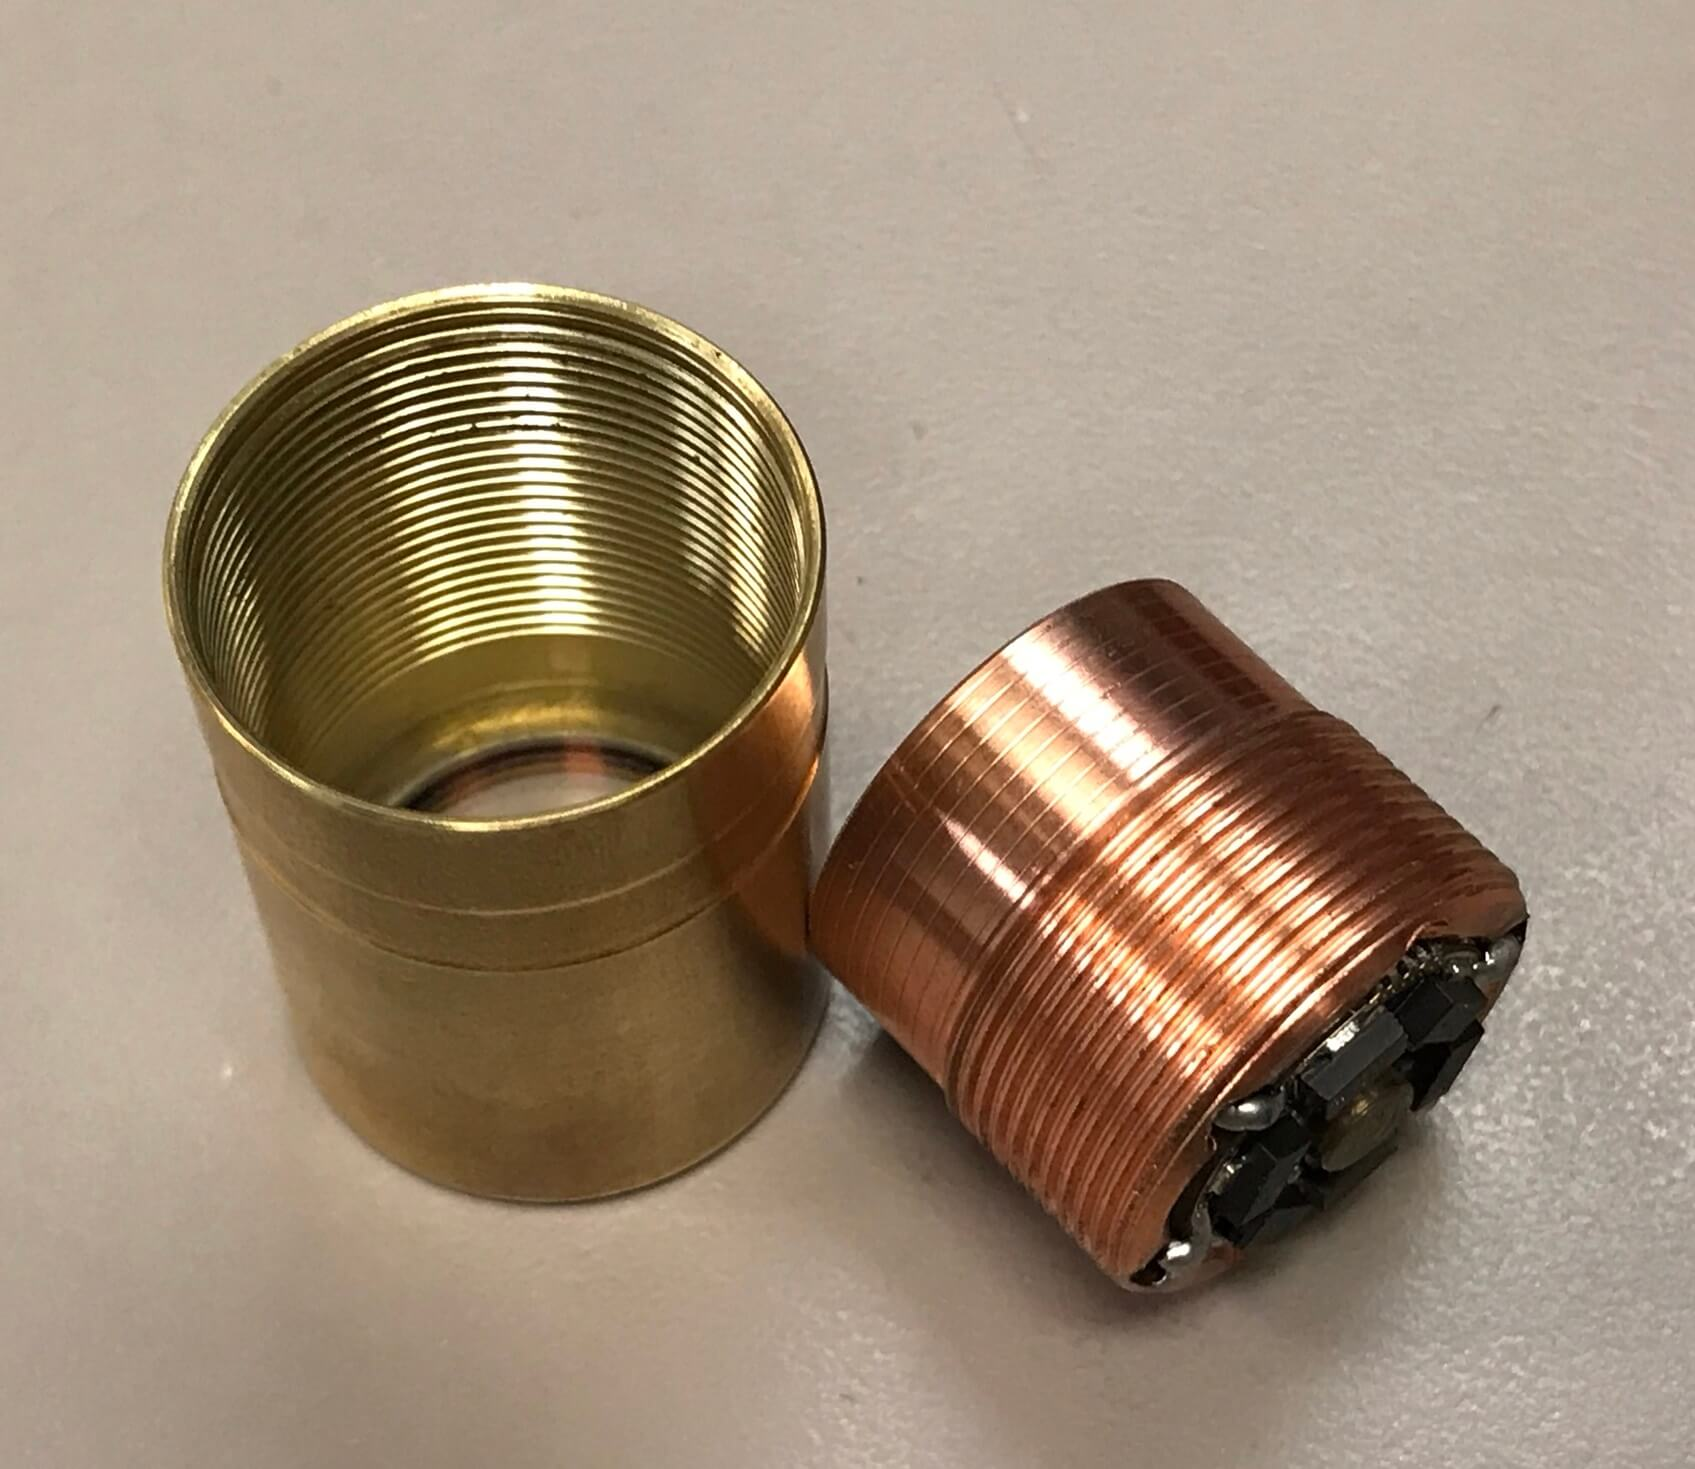 zeroair_reviews_venom_orion_brass_nichia_81.jpg